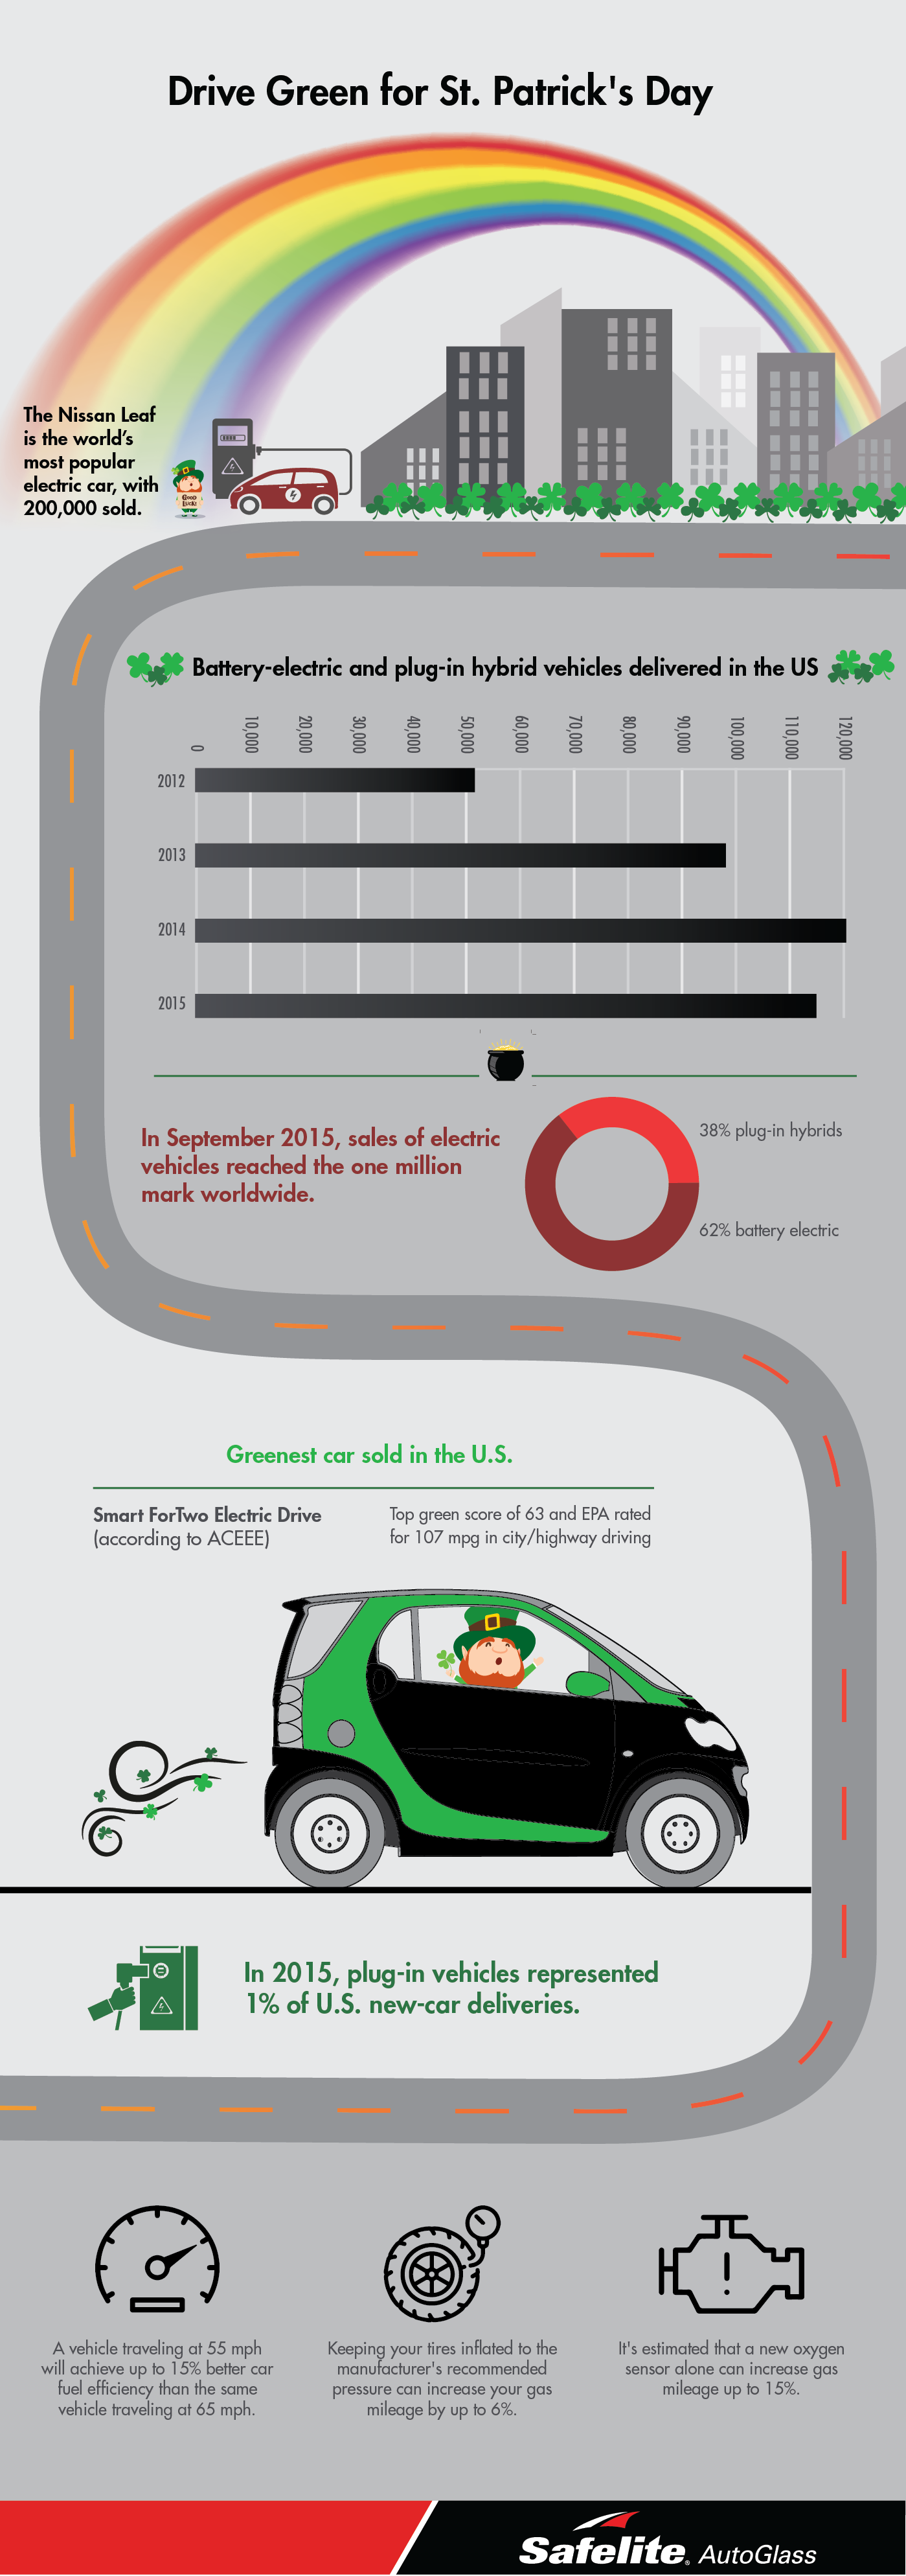 Go green in more way than one this St. Patrick's Day! Check out Safelite's infographic with fun facts about green driving.